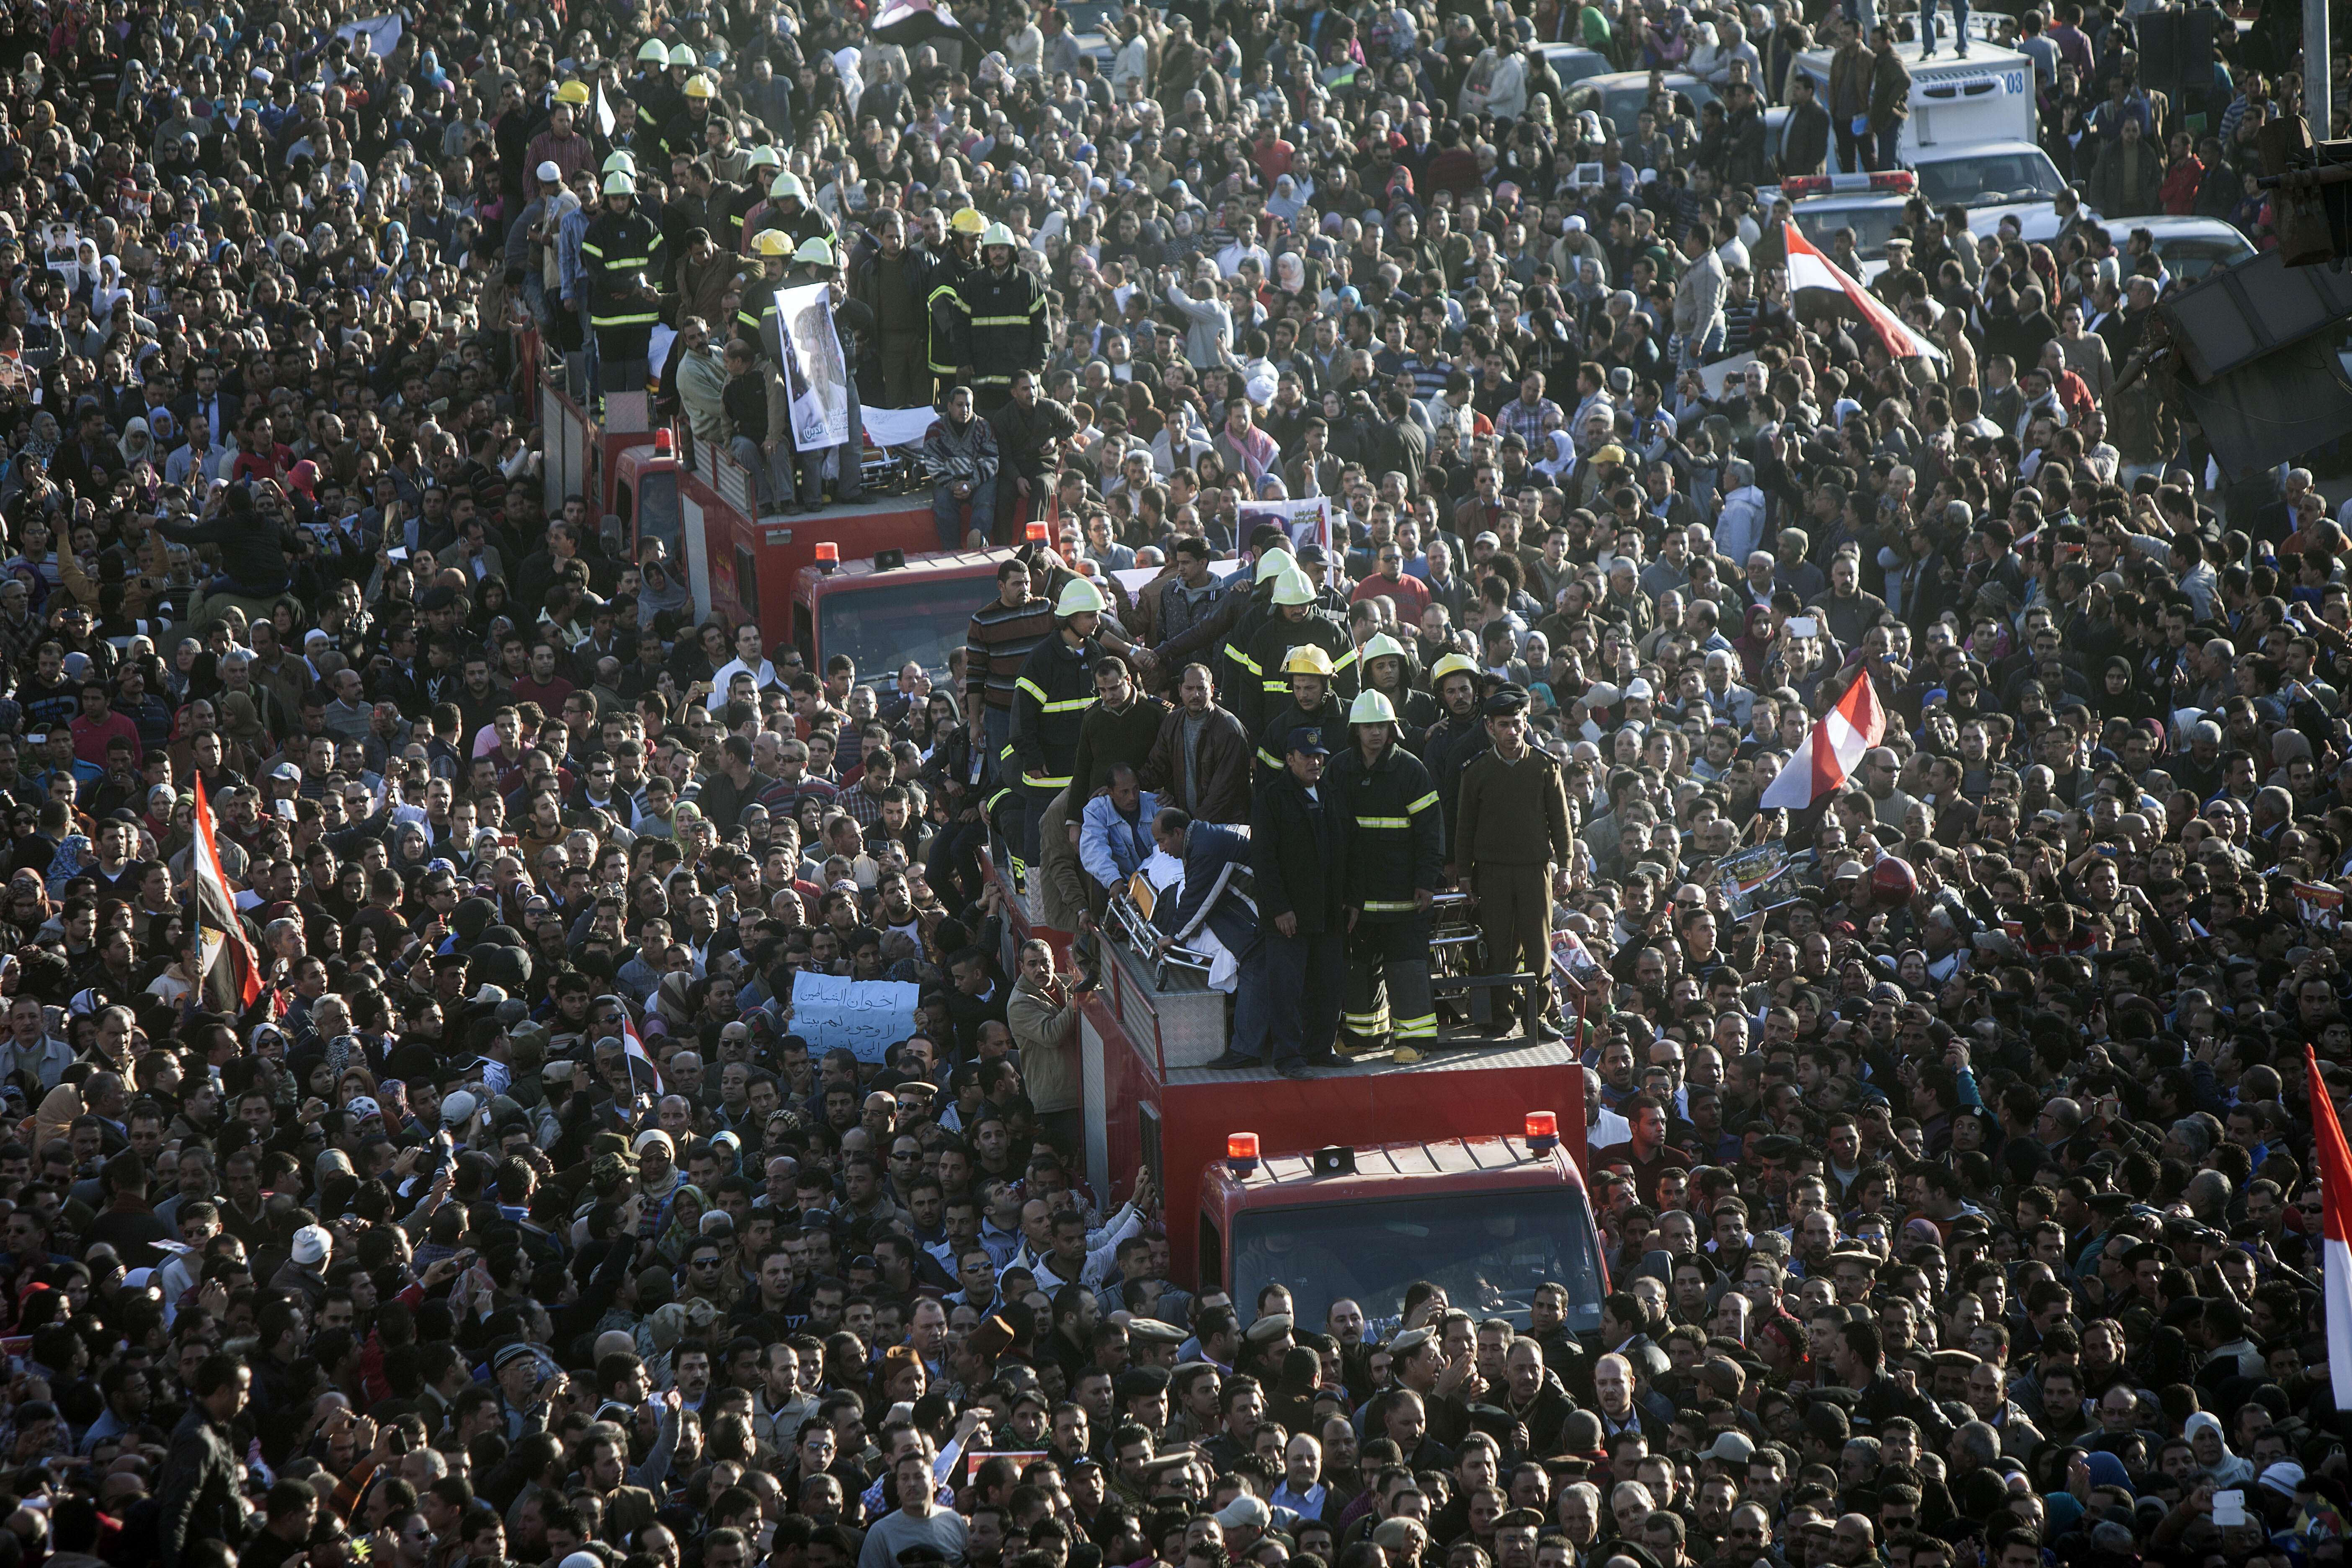 Egyptians carry the body of one of the thirteen people killed in a car bomb attack earlier in the day, during his funeral in the Egyptian city of Mansura, North of Cairo, on December 24, 2013. The car bomb tore through a police building in Mansura, killing at least 13 people, in an attack the authorities said was aimed at derailing the country's transition to democracy. (AFP PHOTO/MAHMOUD KHALED)